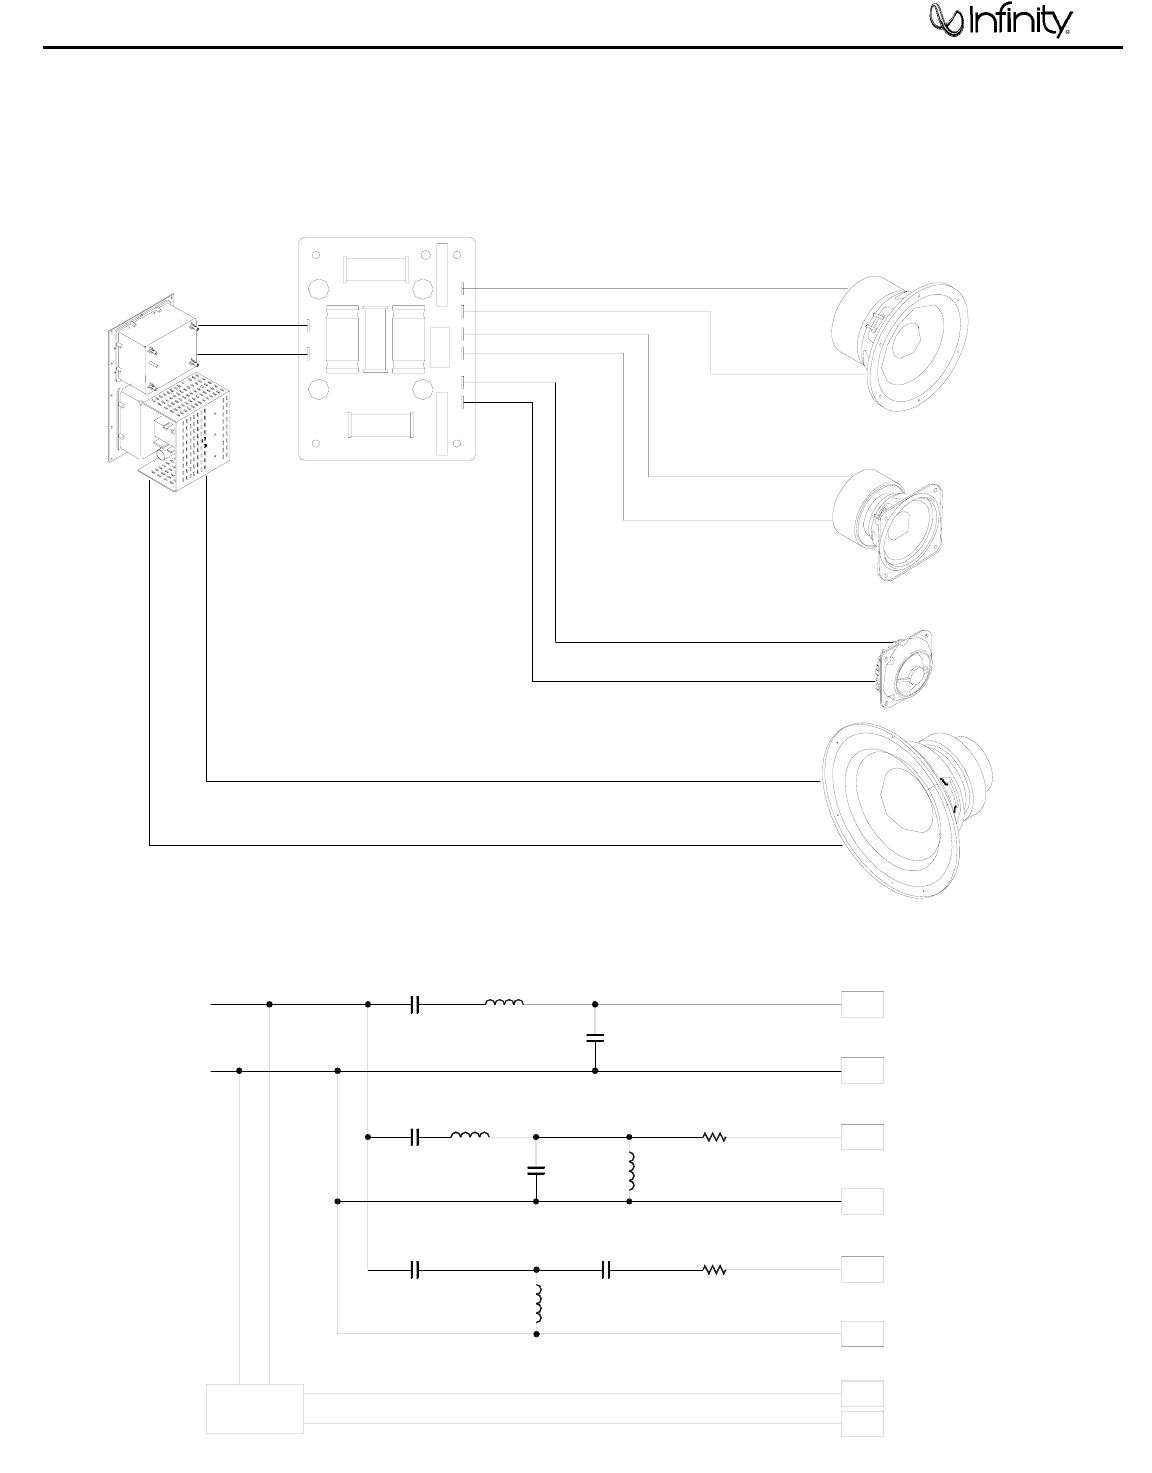 Infinity Speaker Il60 L R Users Manual The Follow Photo Shows General Crossover Circuit Used In This Pcb Wiring Diagram Network